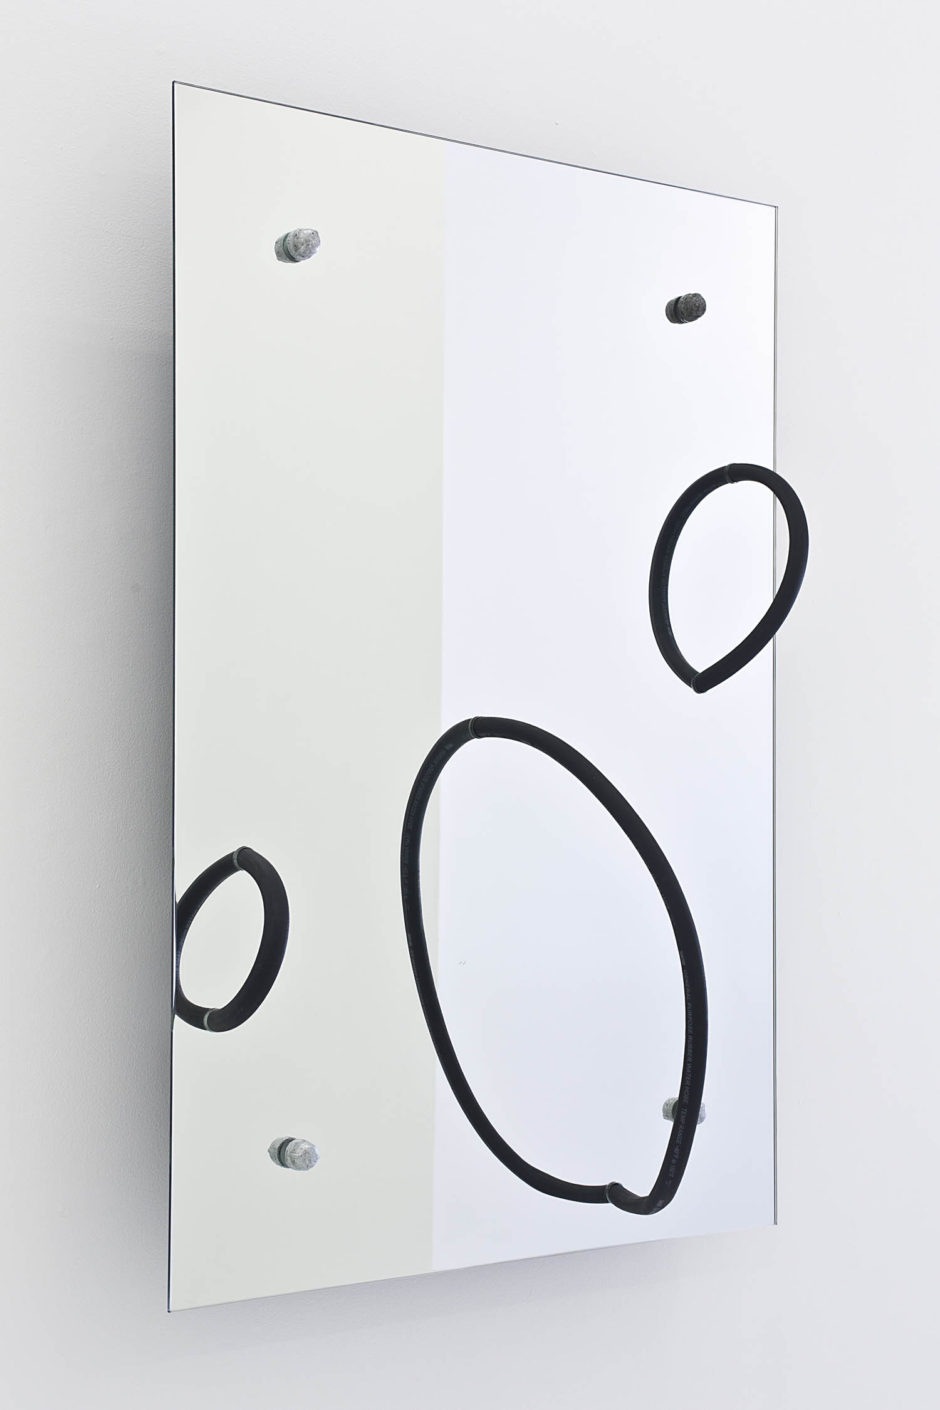 """Monday"", 2015, hose, mirror, steel hardware, 47 x 32 x 12 inches, 119.4 x 81.3 x 30.5 cm"